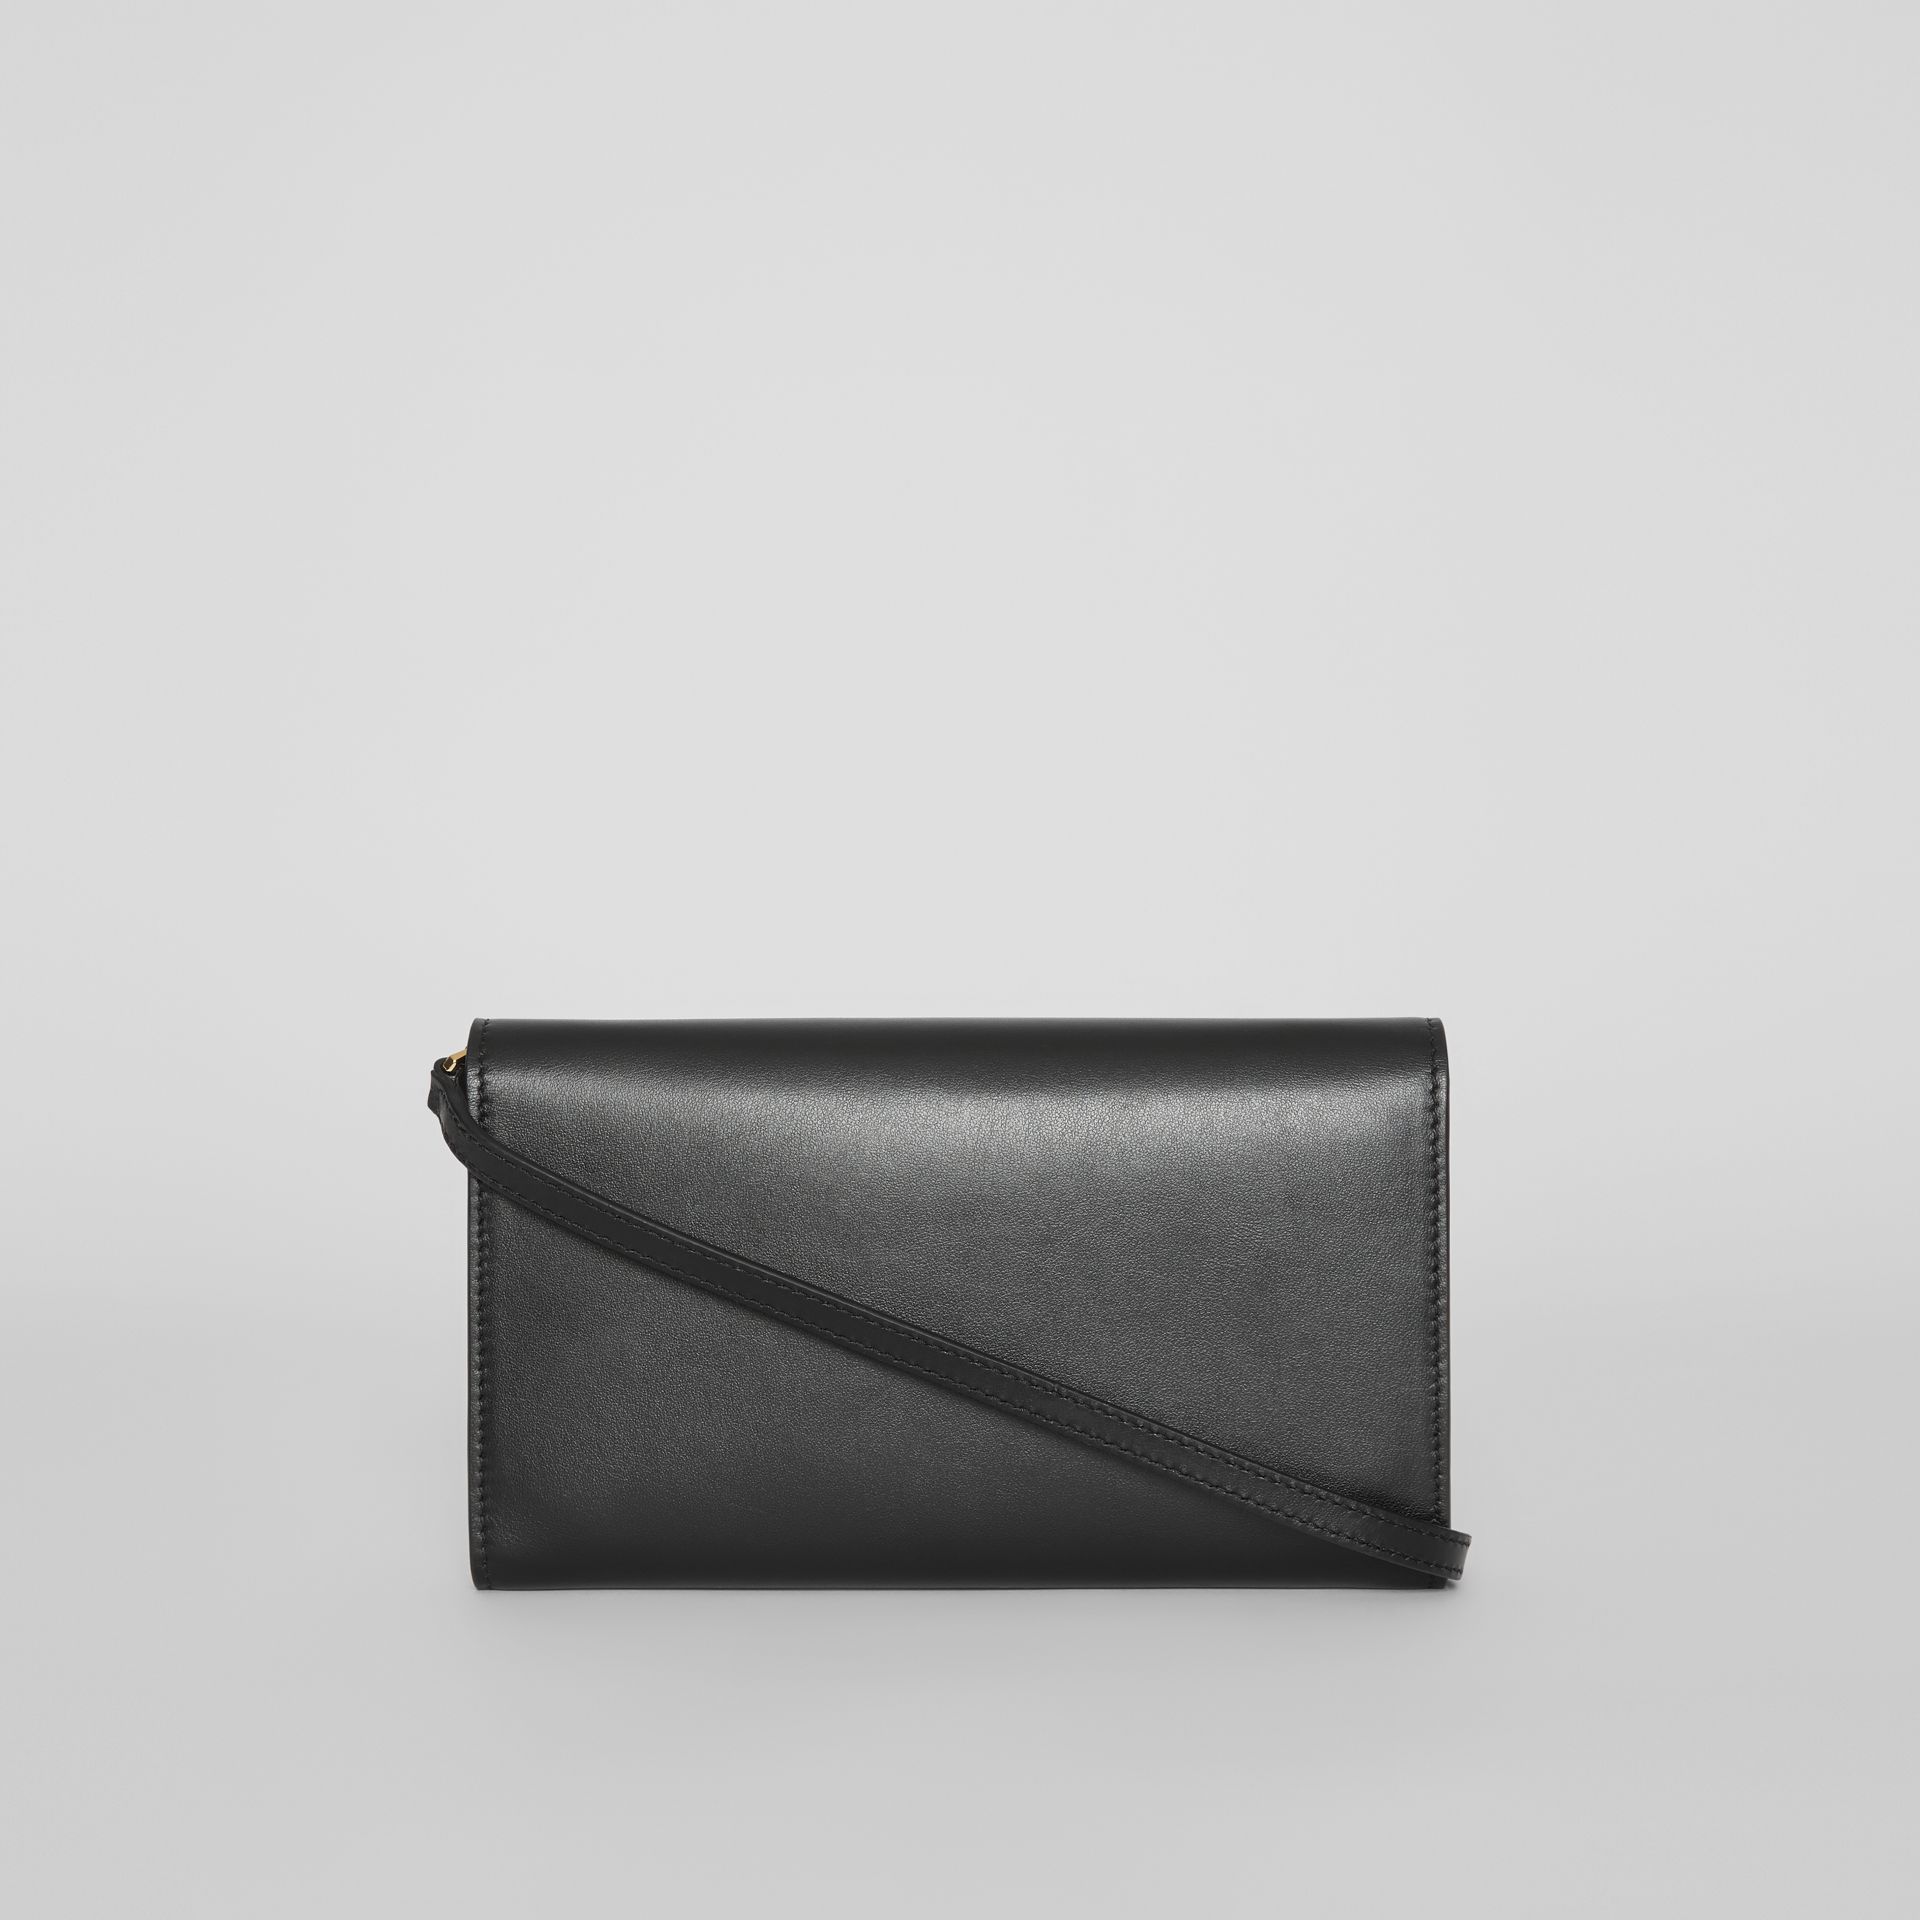 Monogram Motif Leather Wallet with Detachable Strap in Black - Women | Burberry Australia - gallery image 8